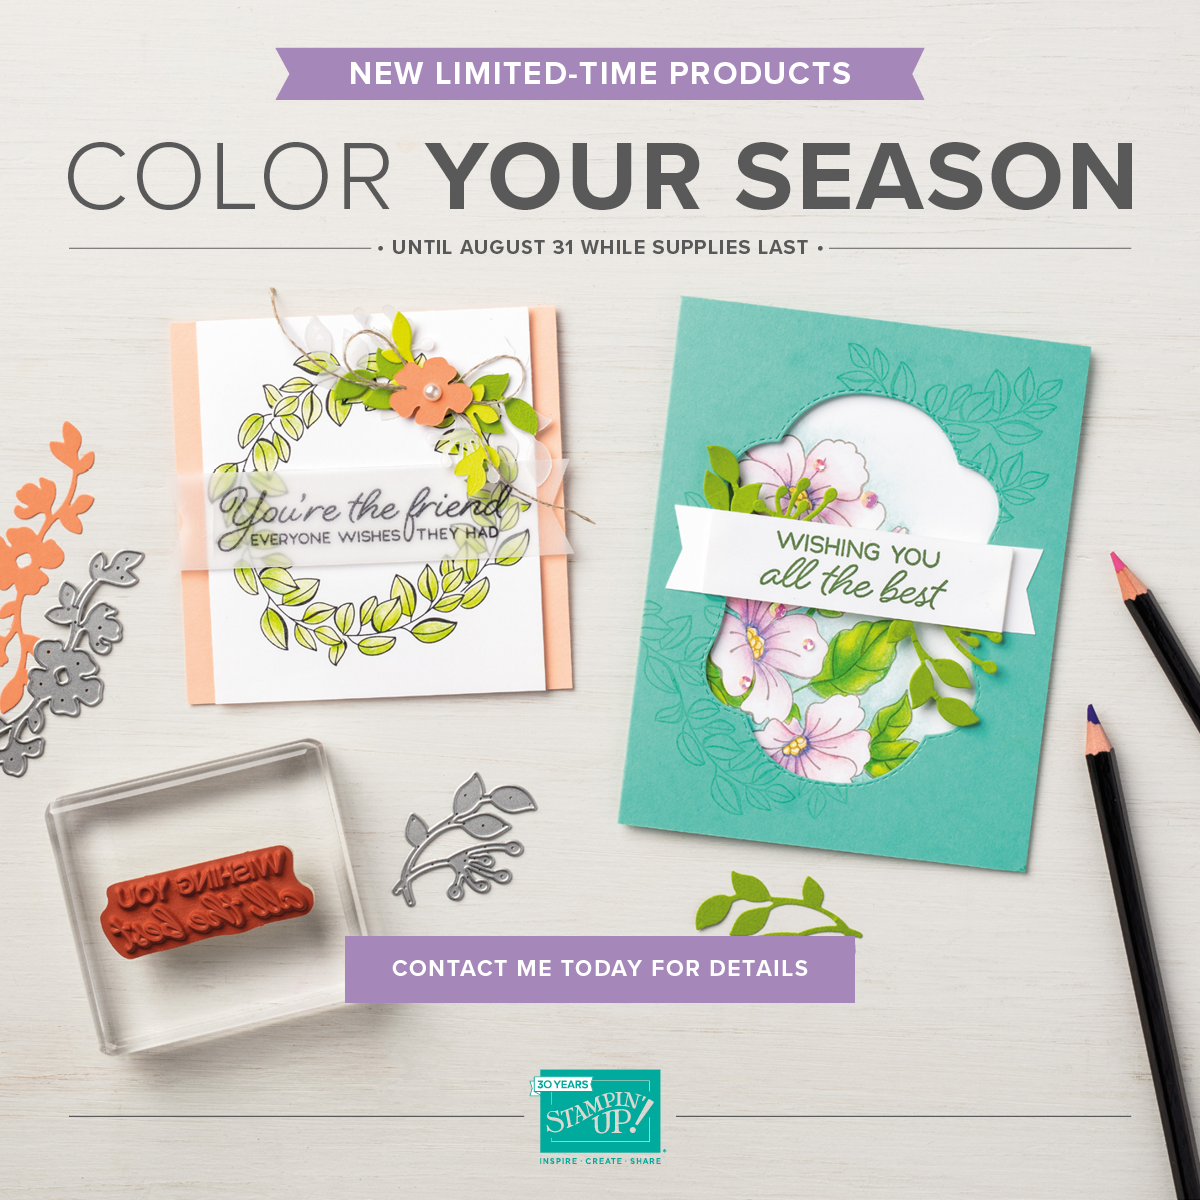 COLOR YOUR SEASON